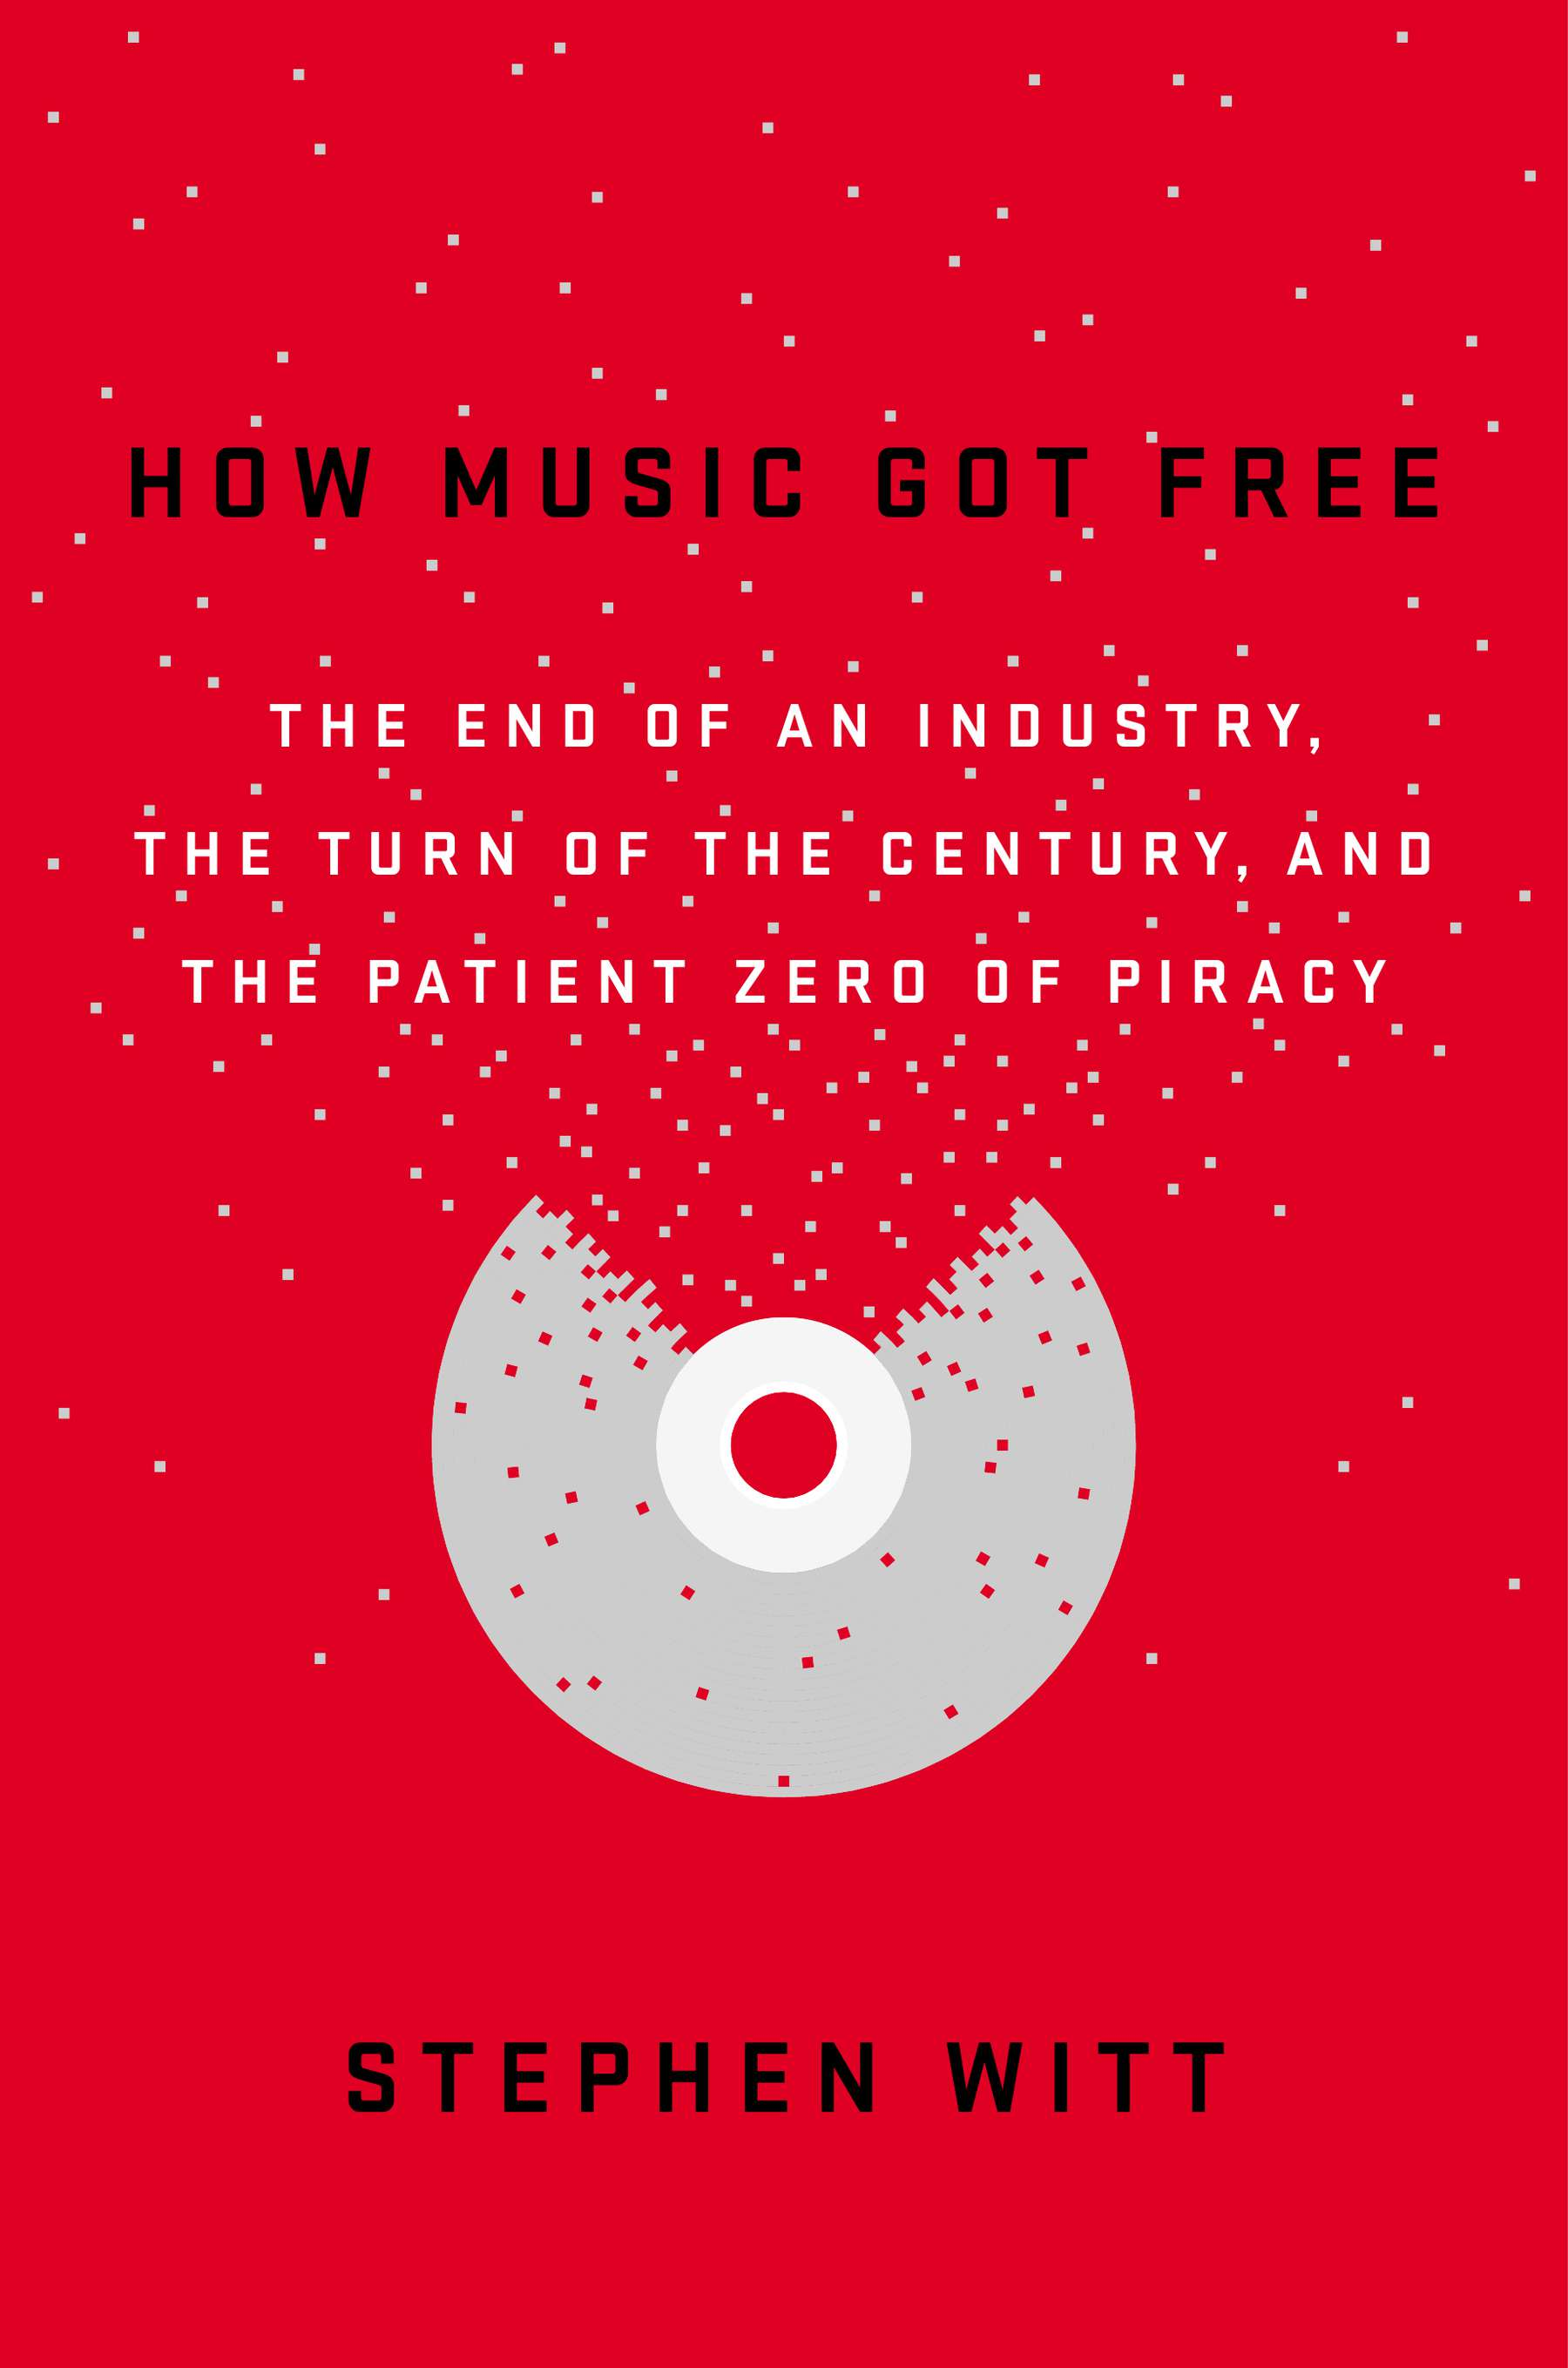 how-music-got-free-book-cover